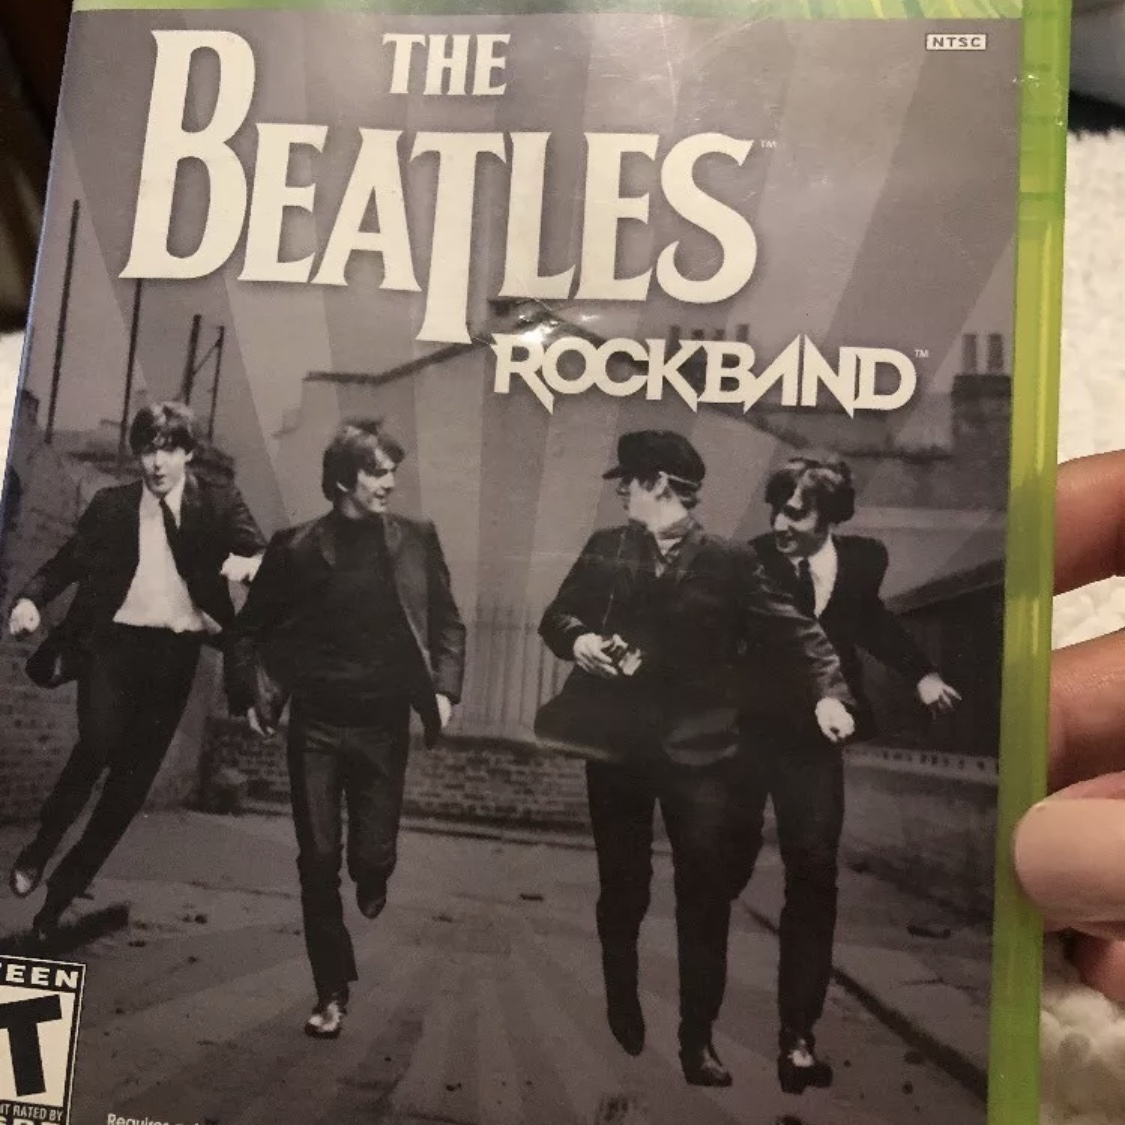 THE BEATLES: ROCK BAND XBOX 360 CIB GREAT